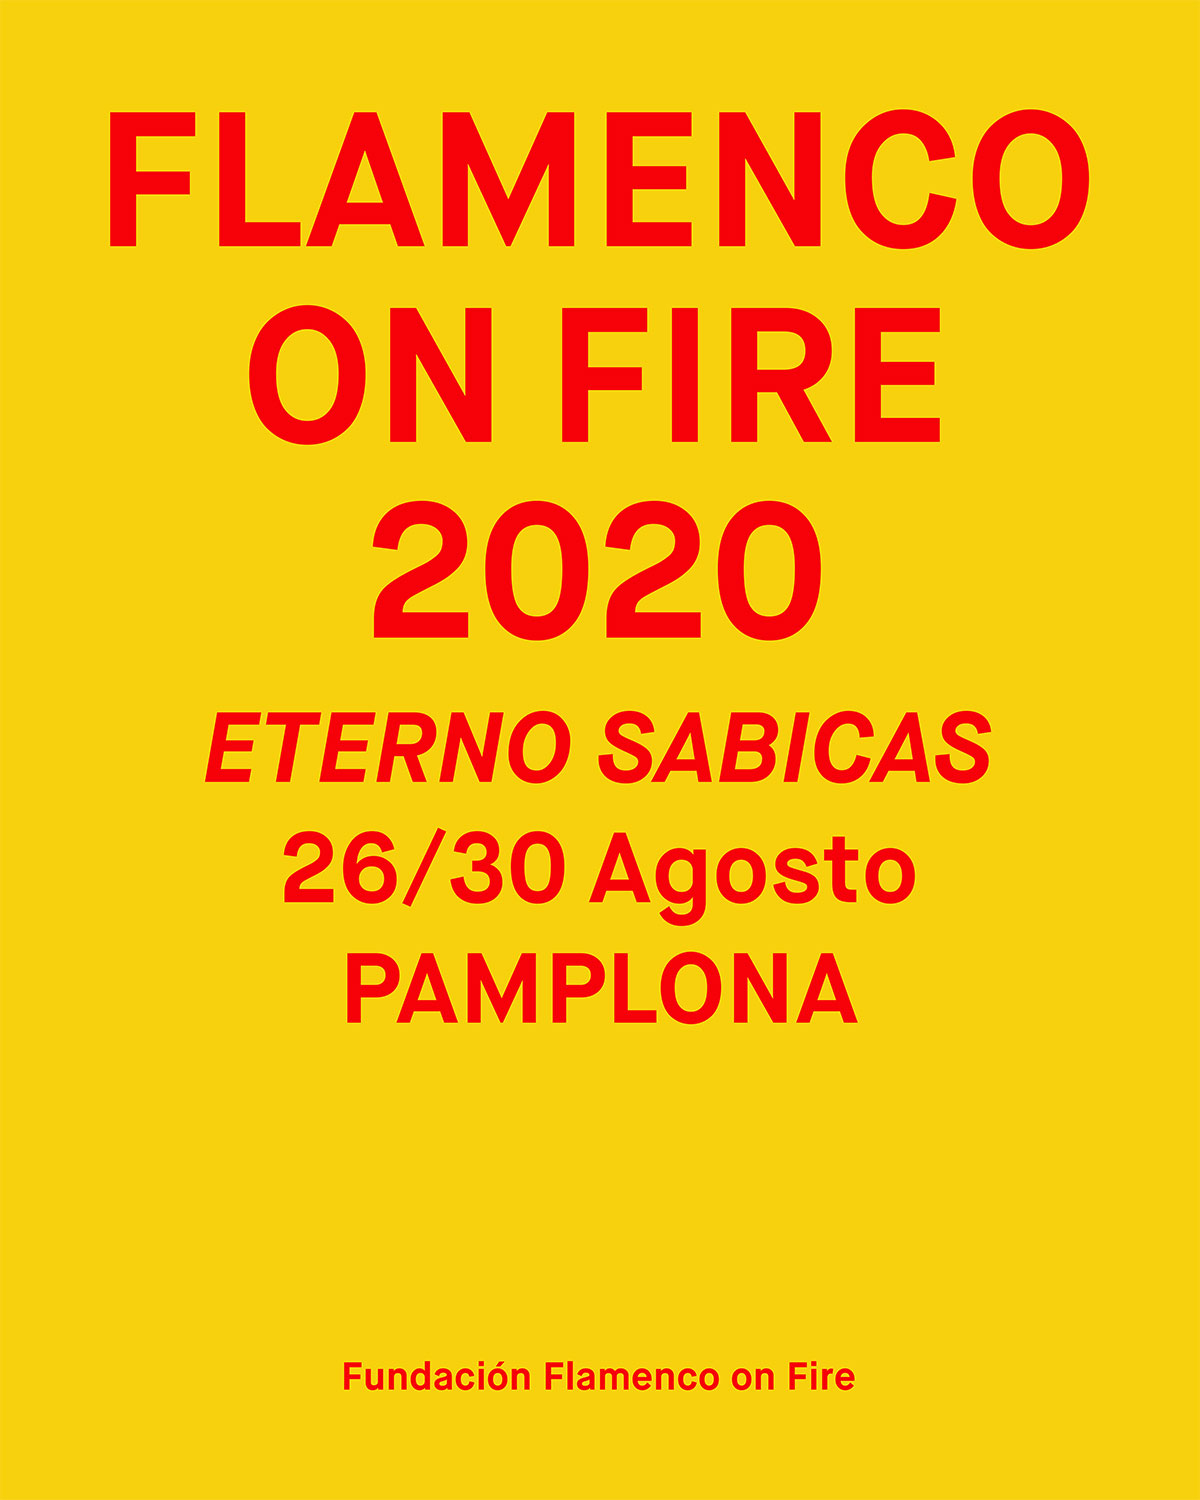 Si, Flamenco on Fire tendrá edición 2020